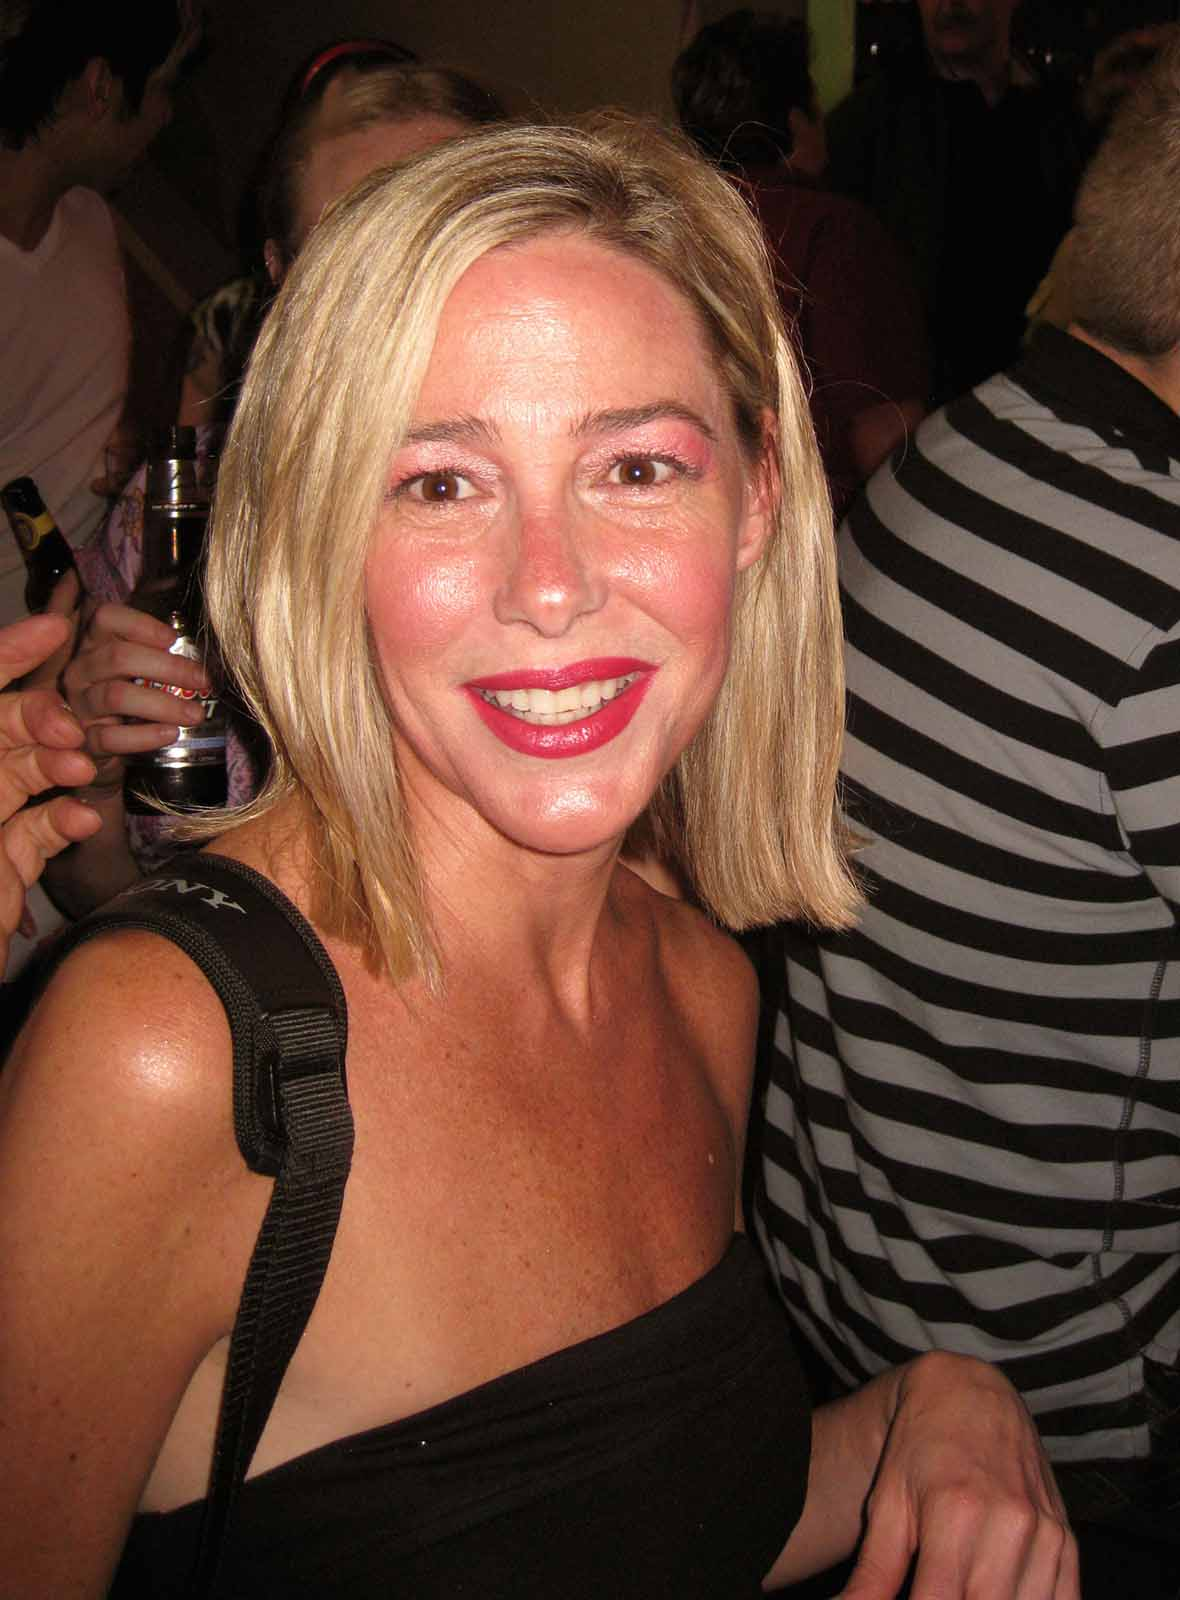 Mary Kay Letourneau spent her lfie being a controversial figure, but she was a loving wife to Vili Fualaau. He's now sharing what her final days were like.